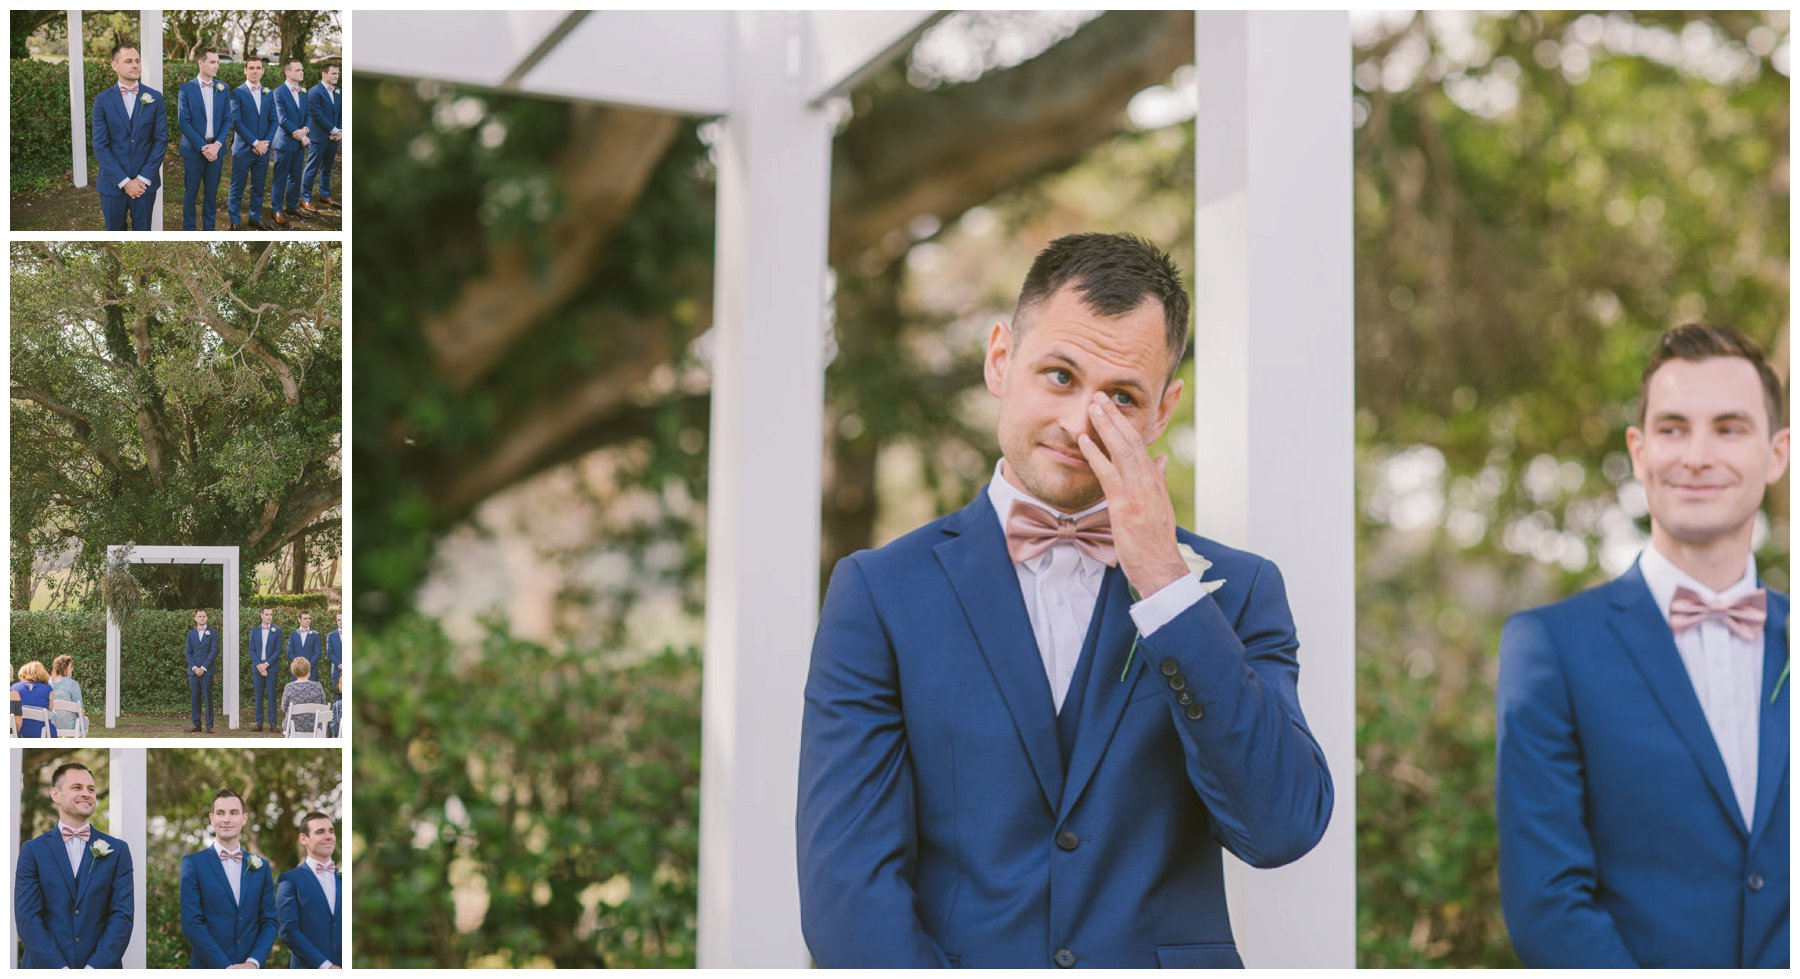 Patrick and Hollie, Coolangatta estate wedding, south coast wedding photographer, Southern Highlands wedding photographer, southern highlands photographer, groom, tearing up, tears, crying, emotional day